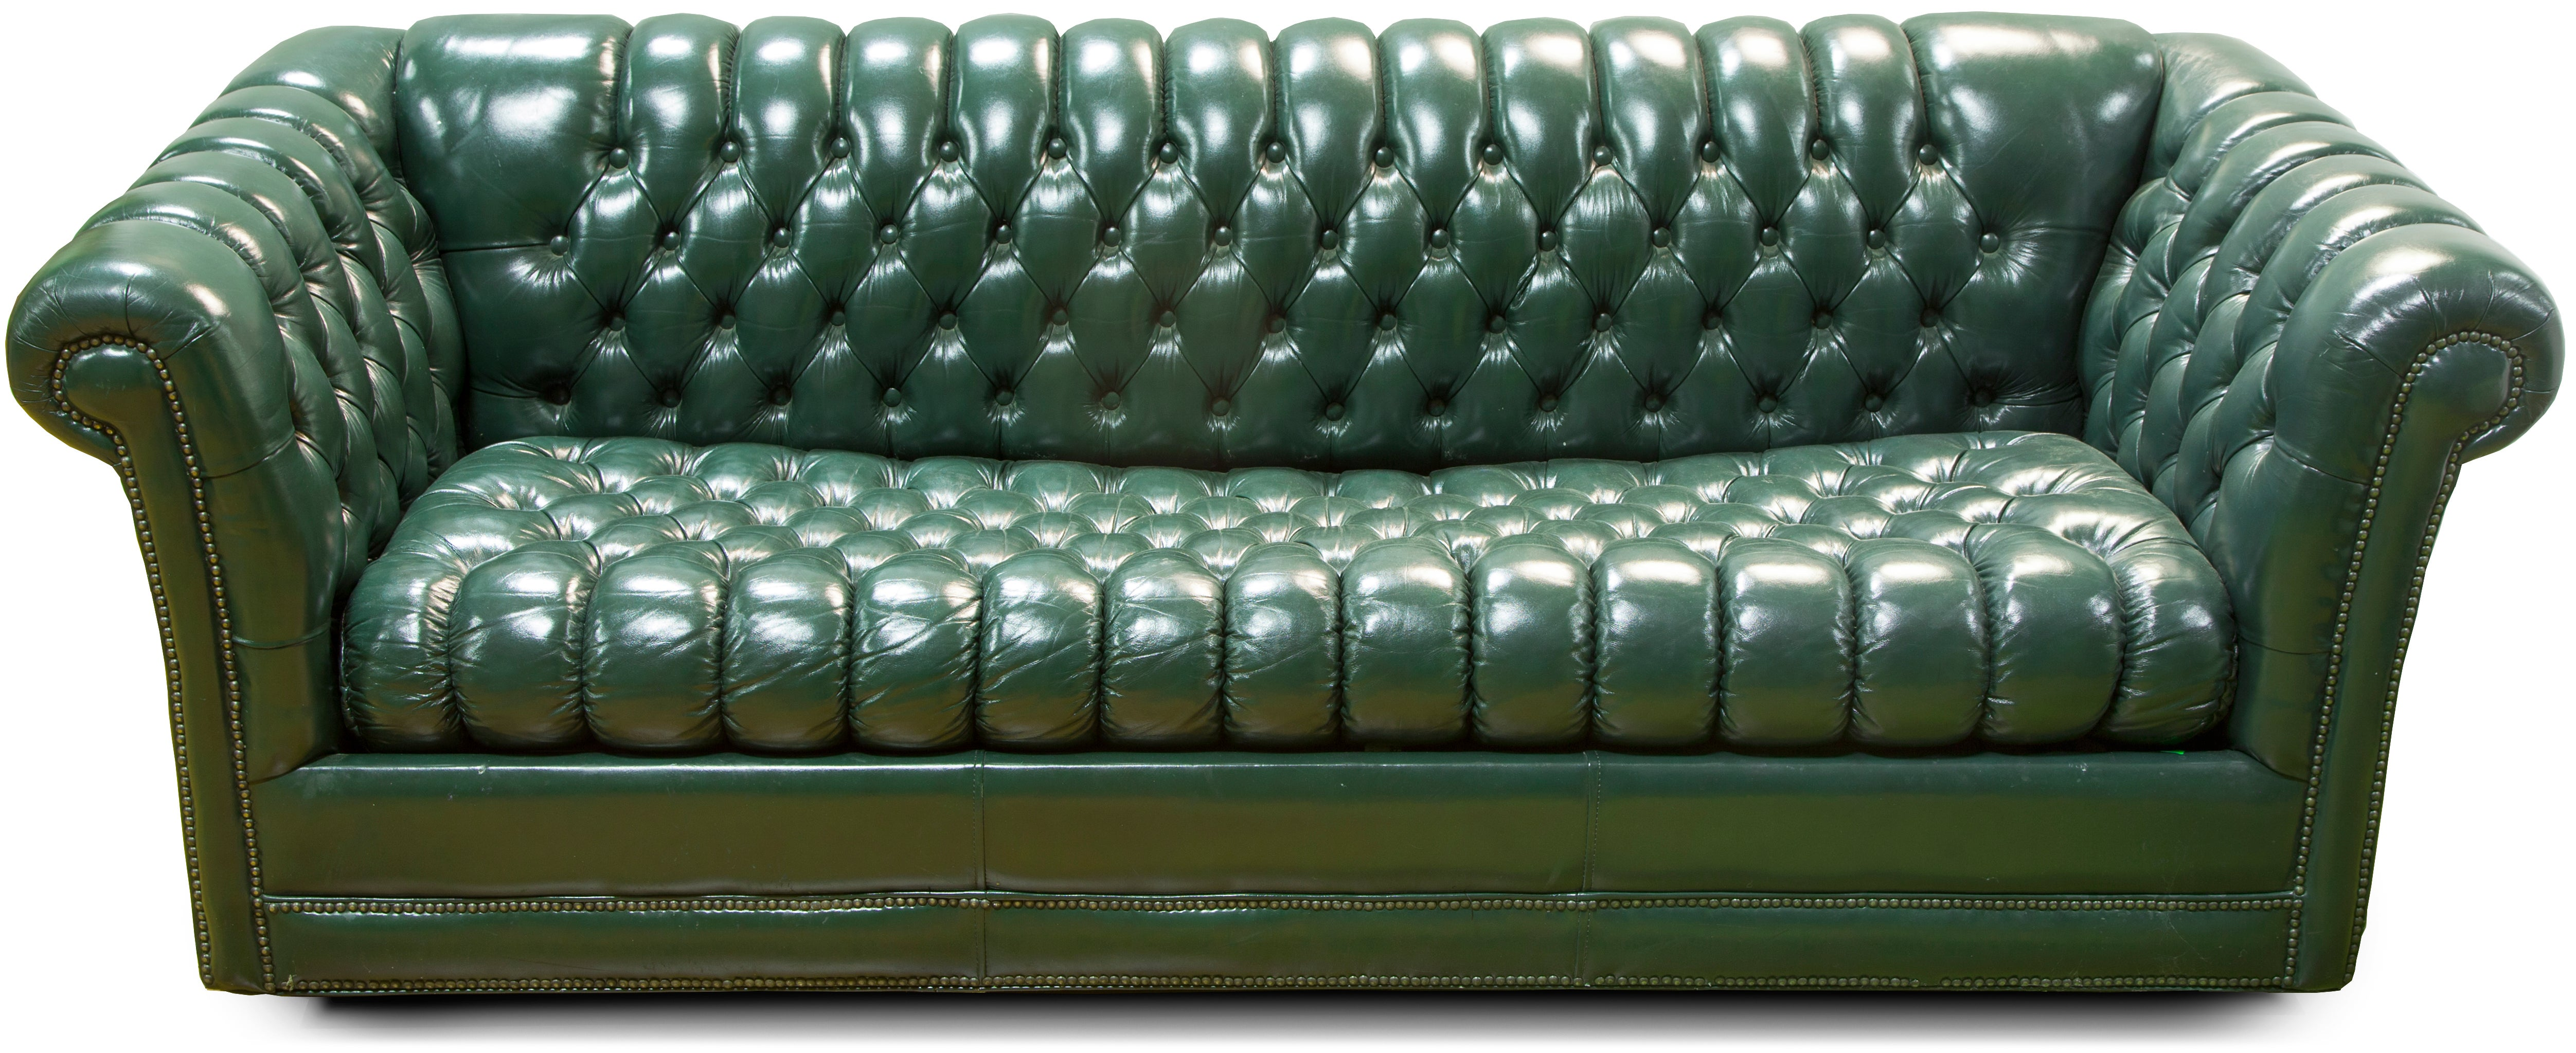 Ordinaire Green Leather Chesterfield Sofa